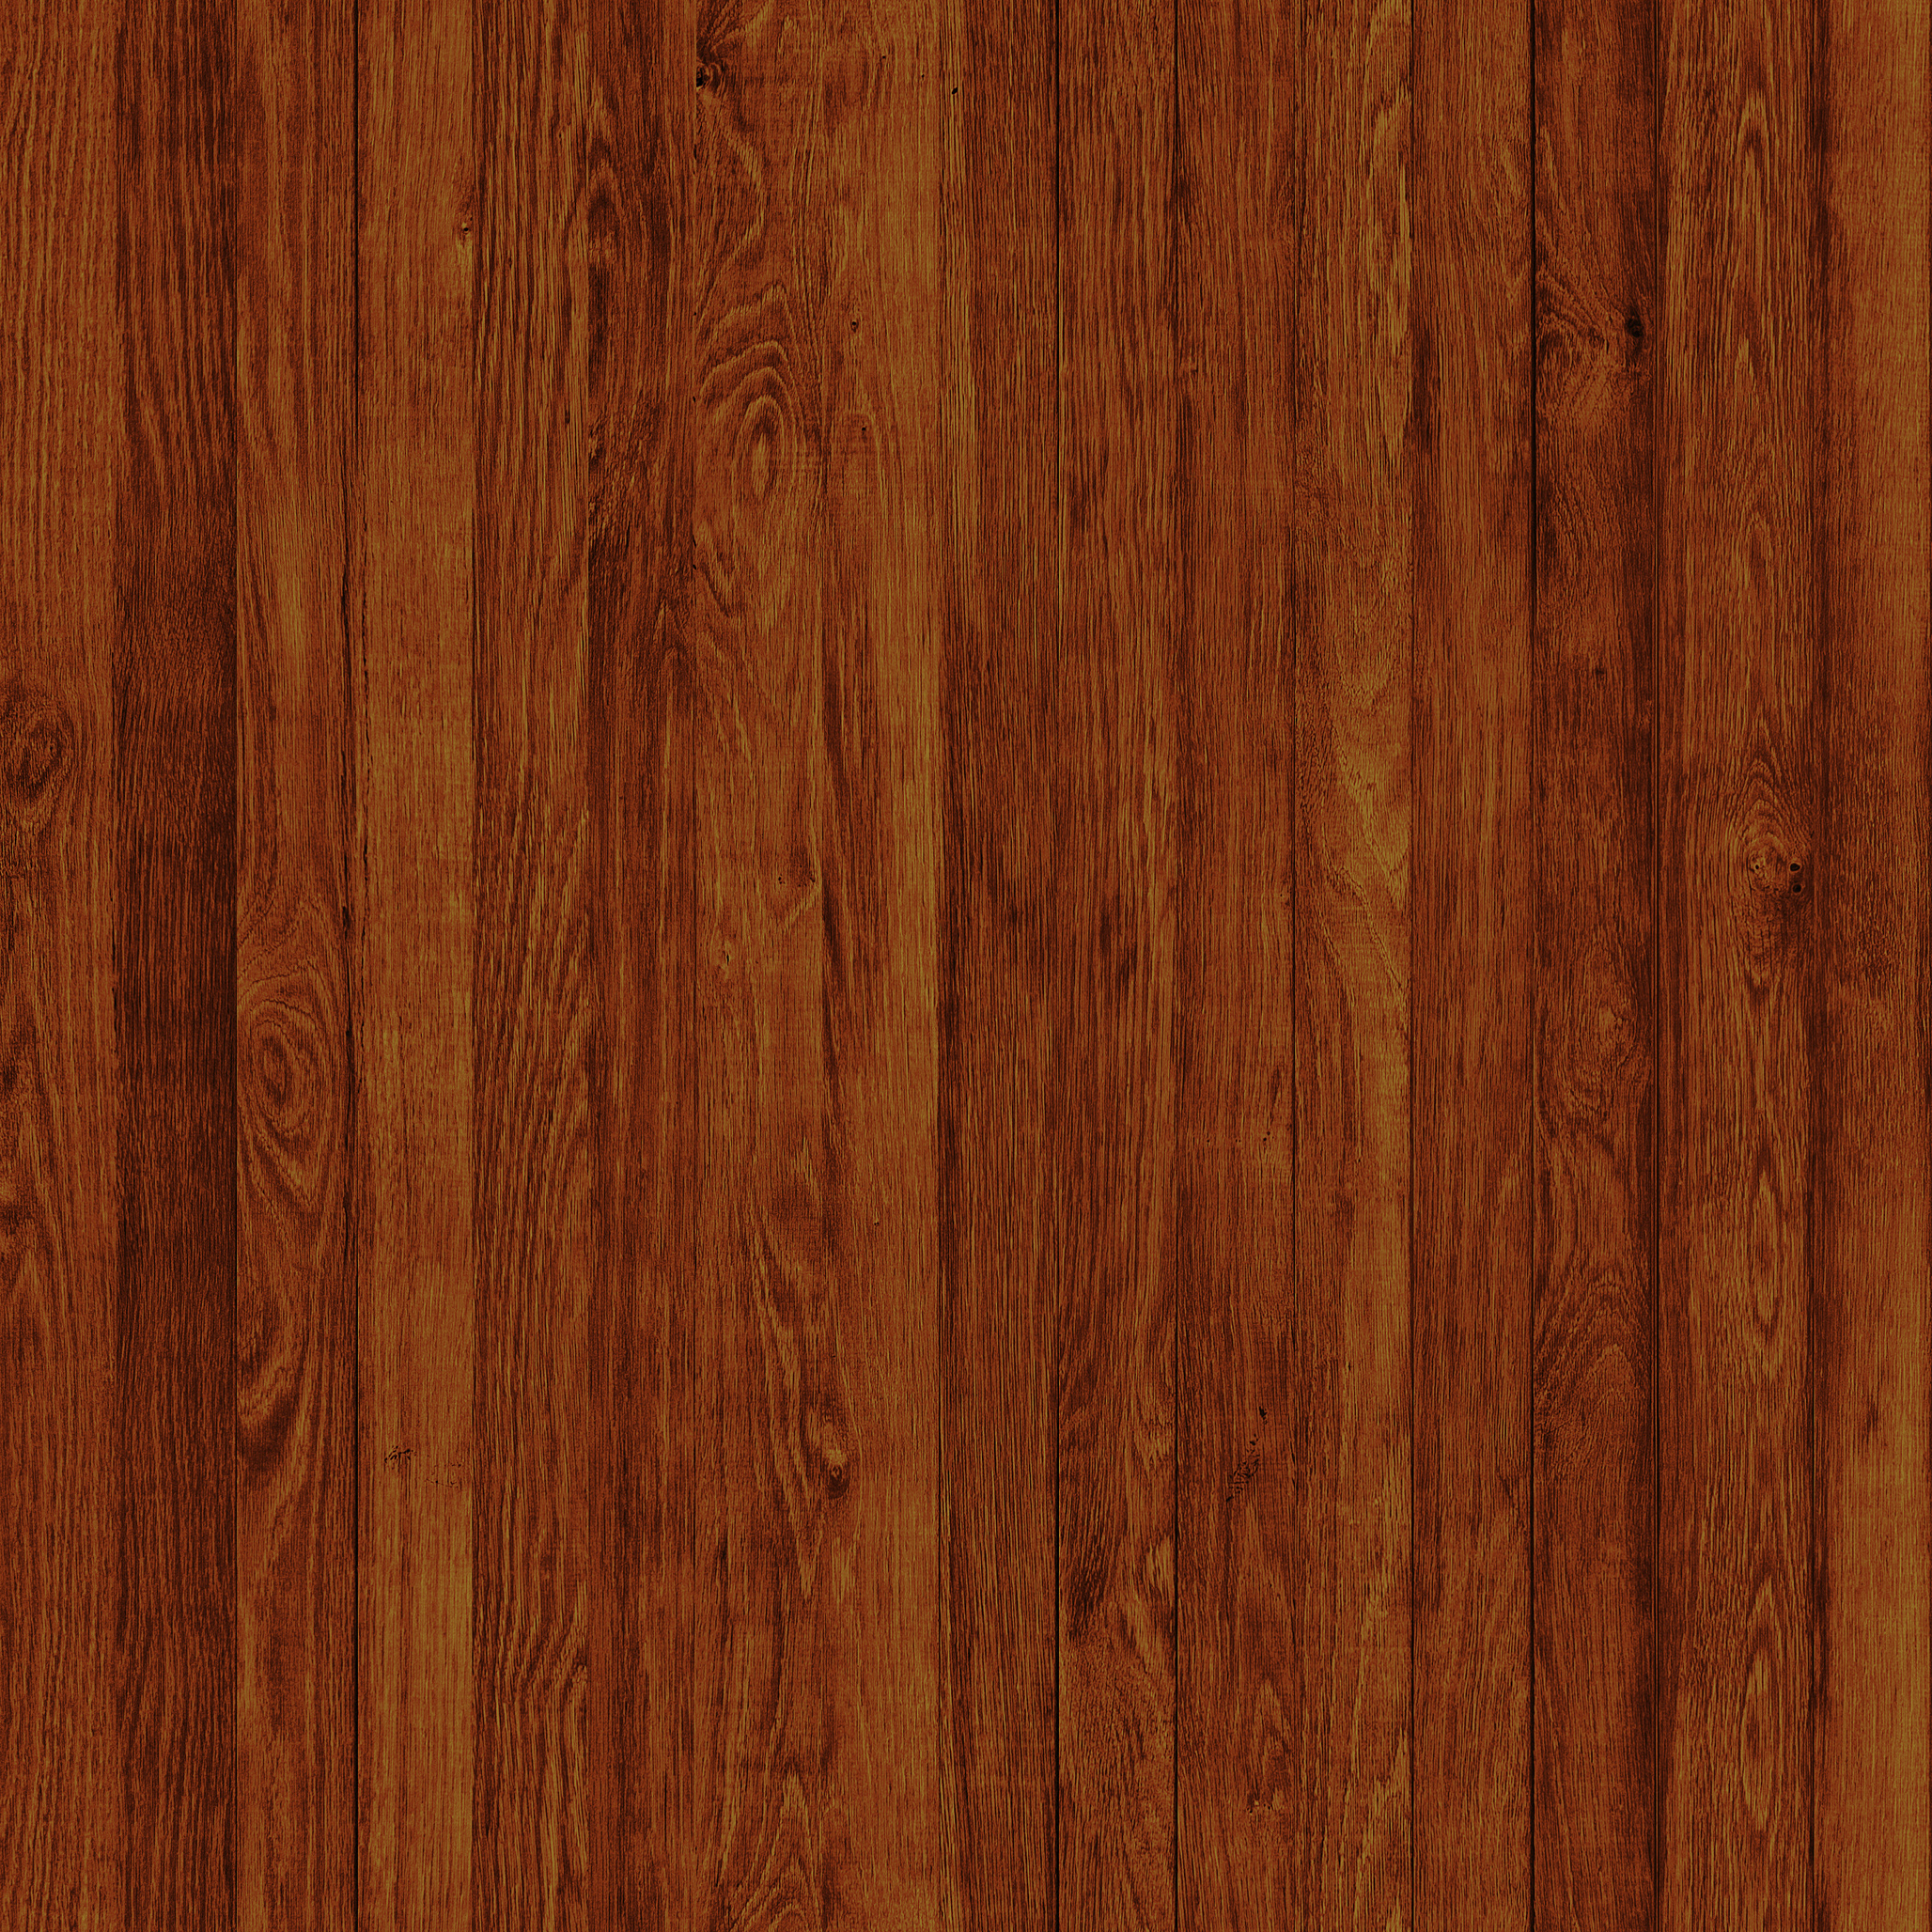 Hardwood Floor Wallpaper Wallpapersafari Wood Flooring Textures Pic2flywoodflooring Chalkartfo Gallery